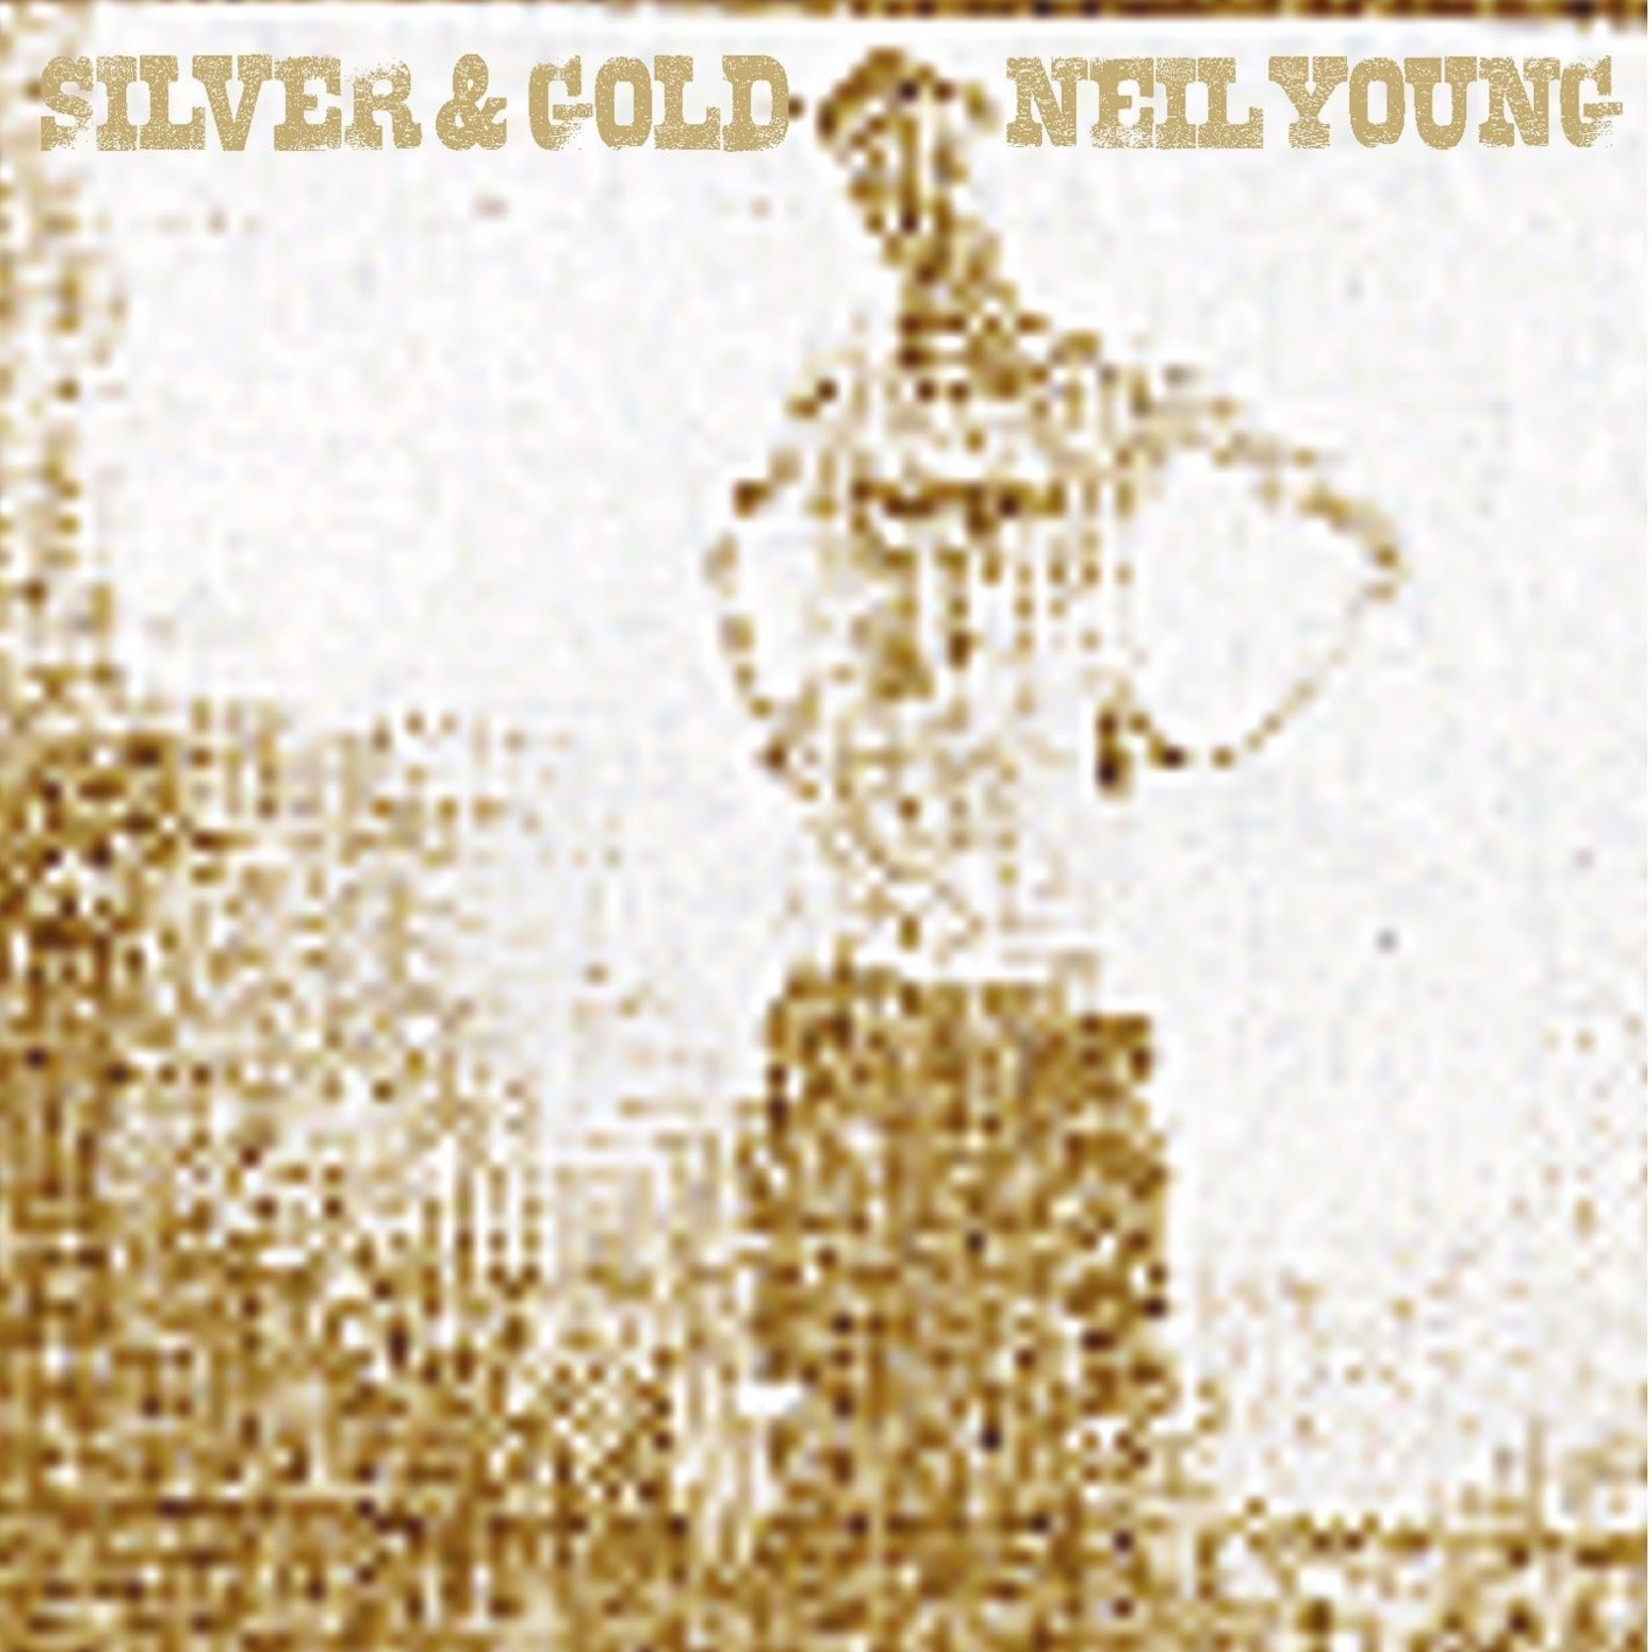 [New] Young, Neil: Silver And Gold